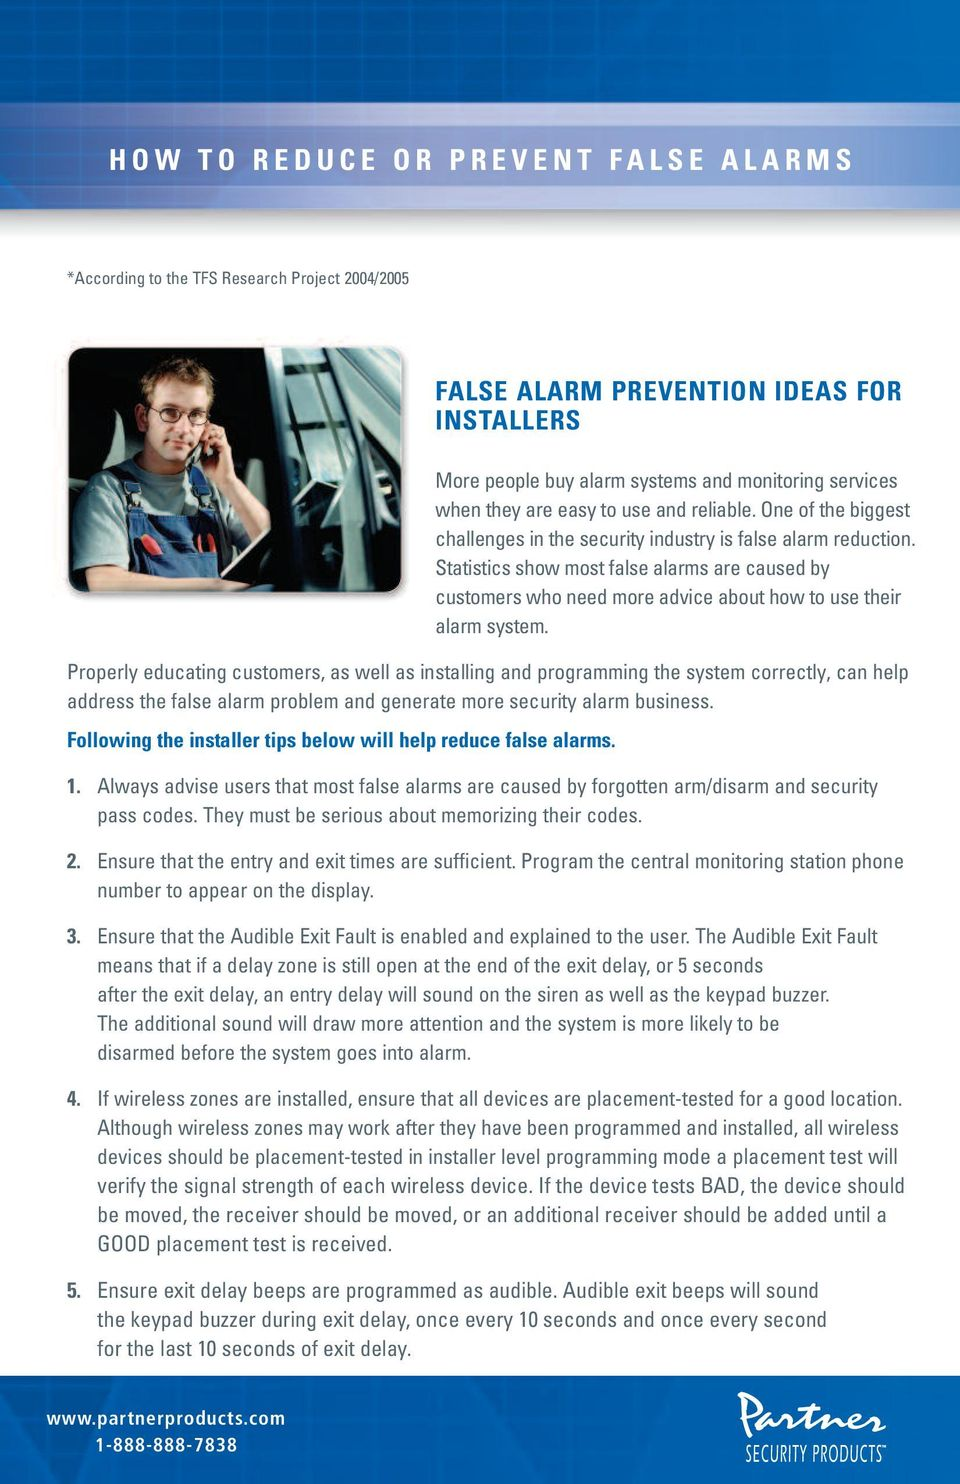 Properly educating customers, as well as installing and programming the system correctly, can help address the false alarm problem and generate more security alarm business.